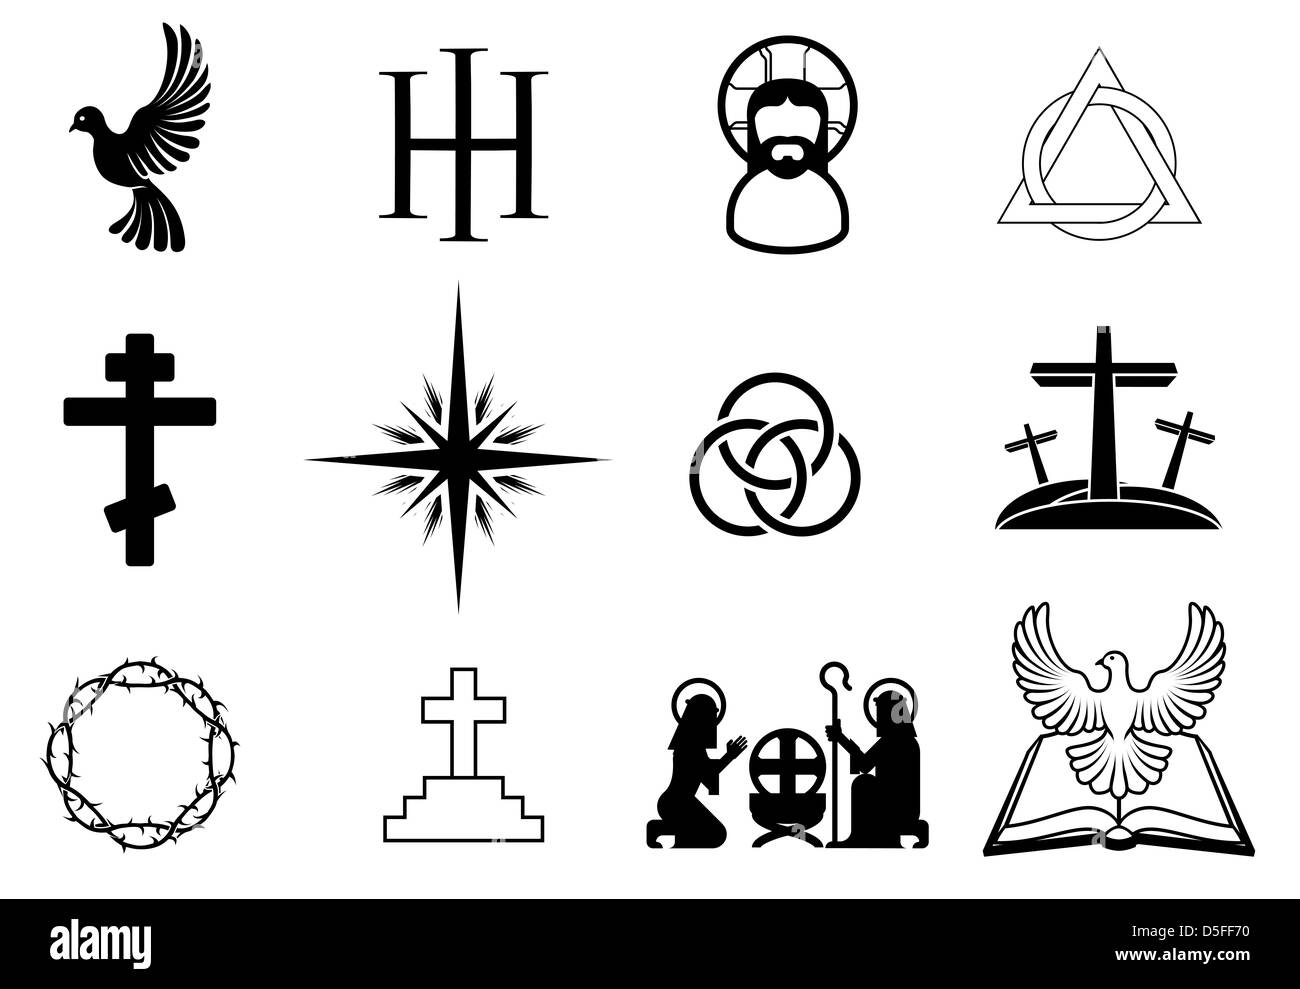 A Set Of Christian Religious Signs And Symbols Stock Photo 55045620